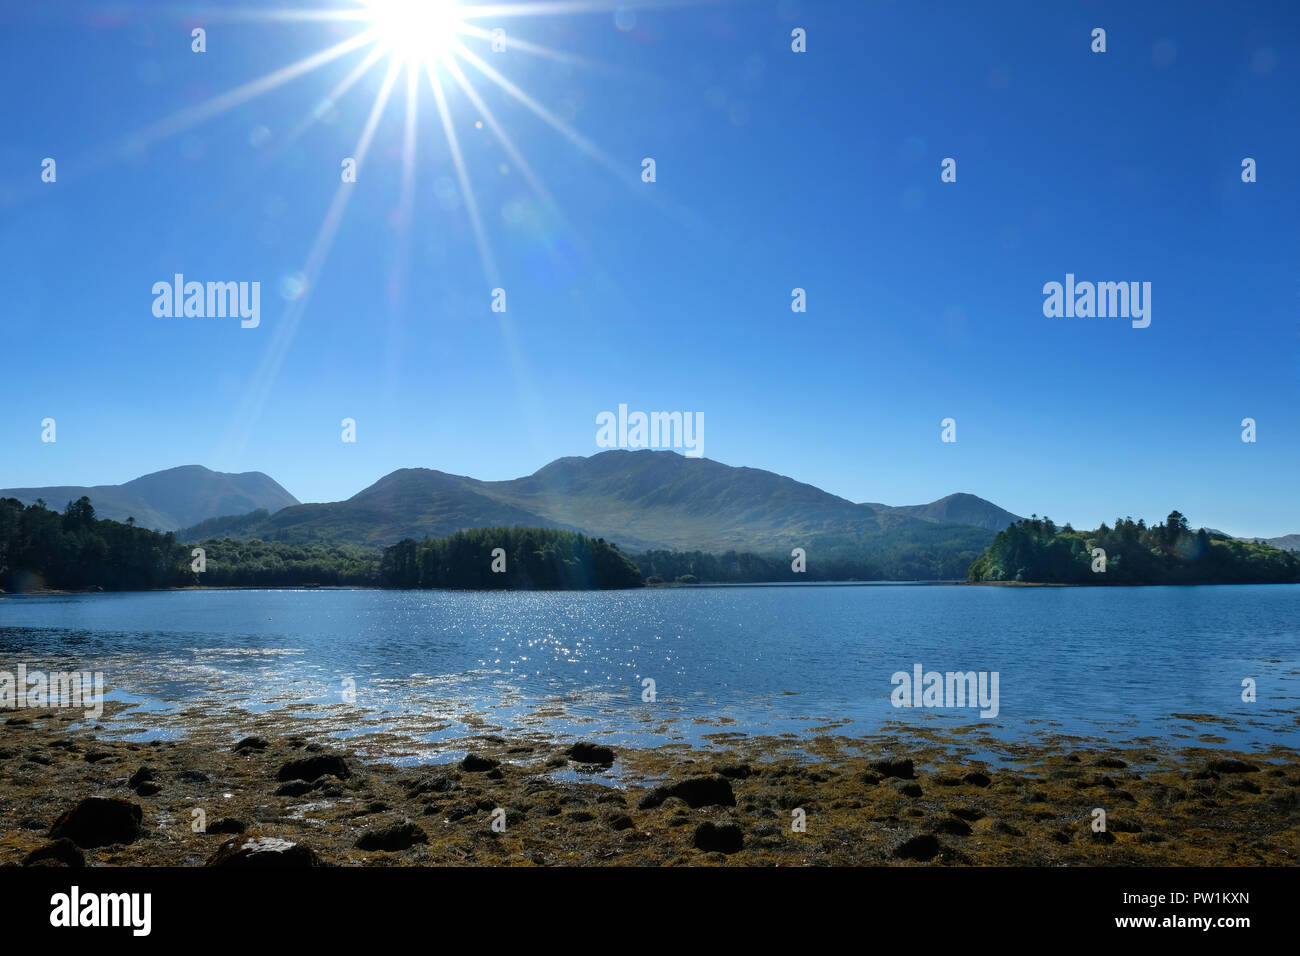 Kenmare River on the County Kerry coast, Ireland, with plenty of lens flare - John Gollop - Stock Image